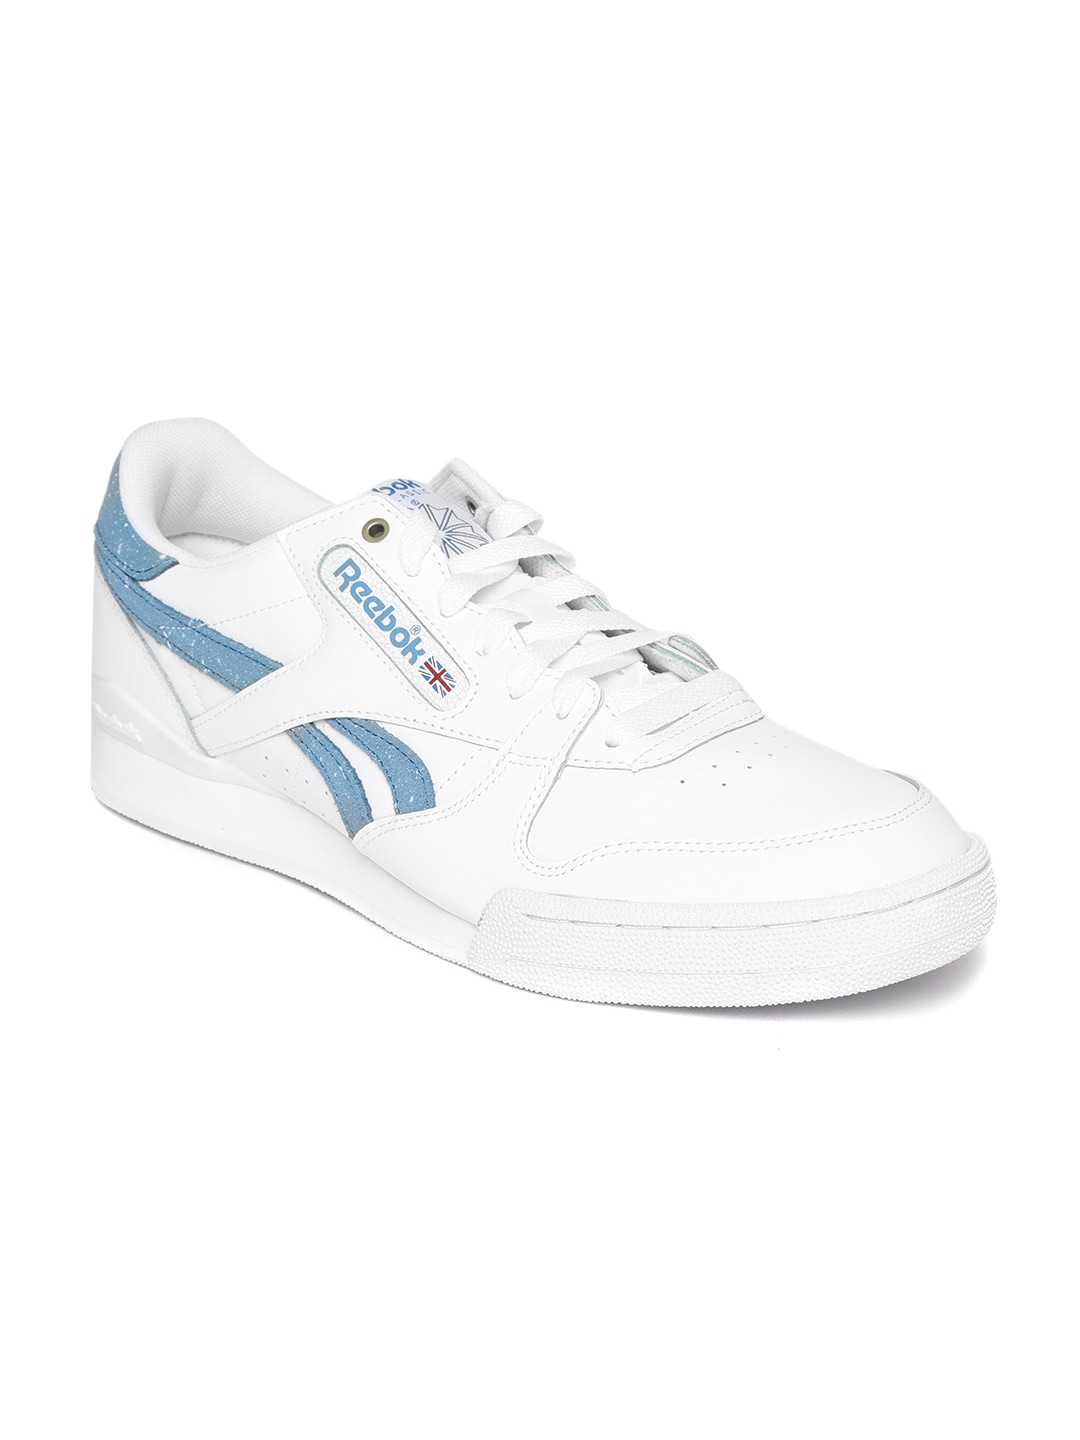 c2f1ddab29f Reebok Red White Shoes Casual - Buy Reebok Red White Shoes Casual online in  India